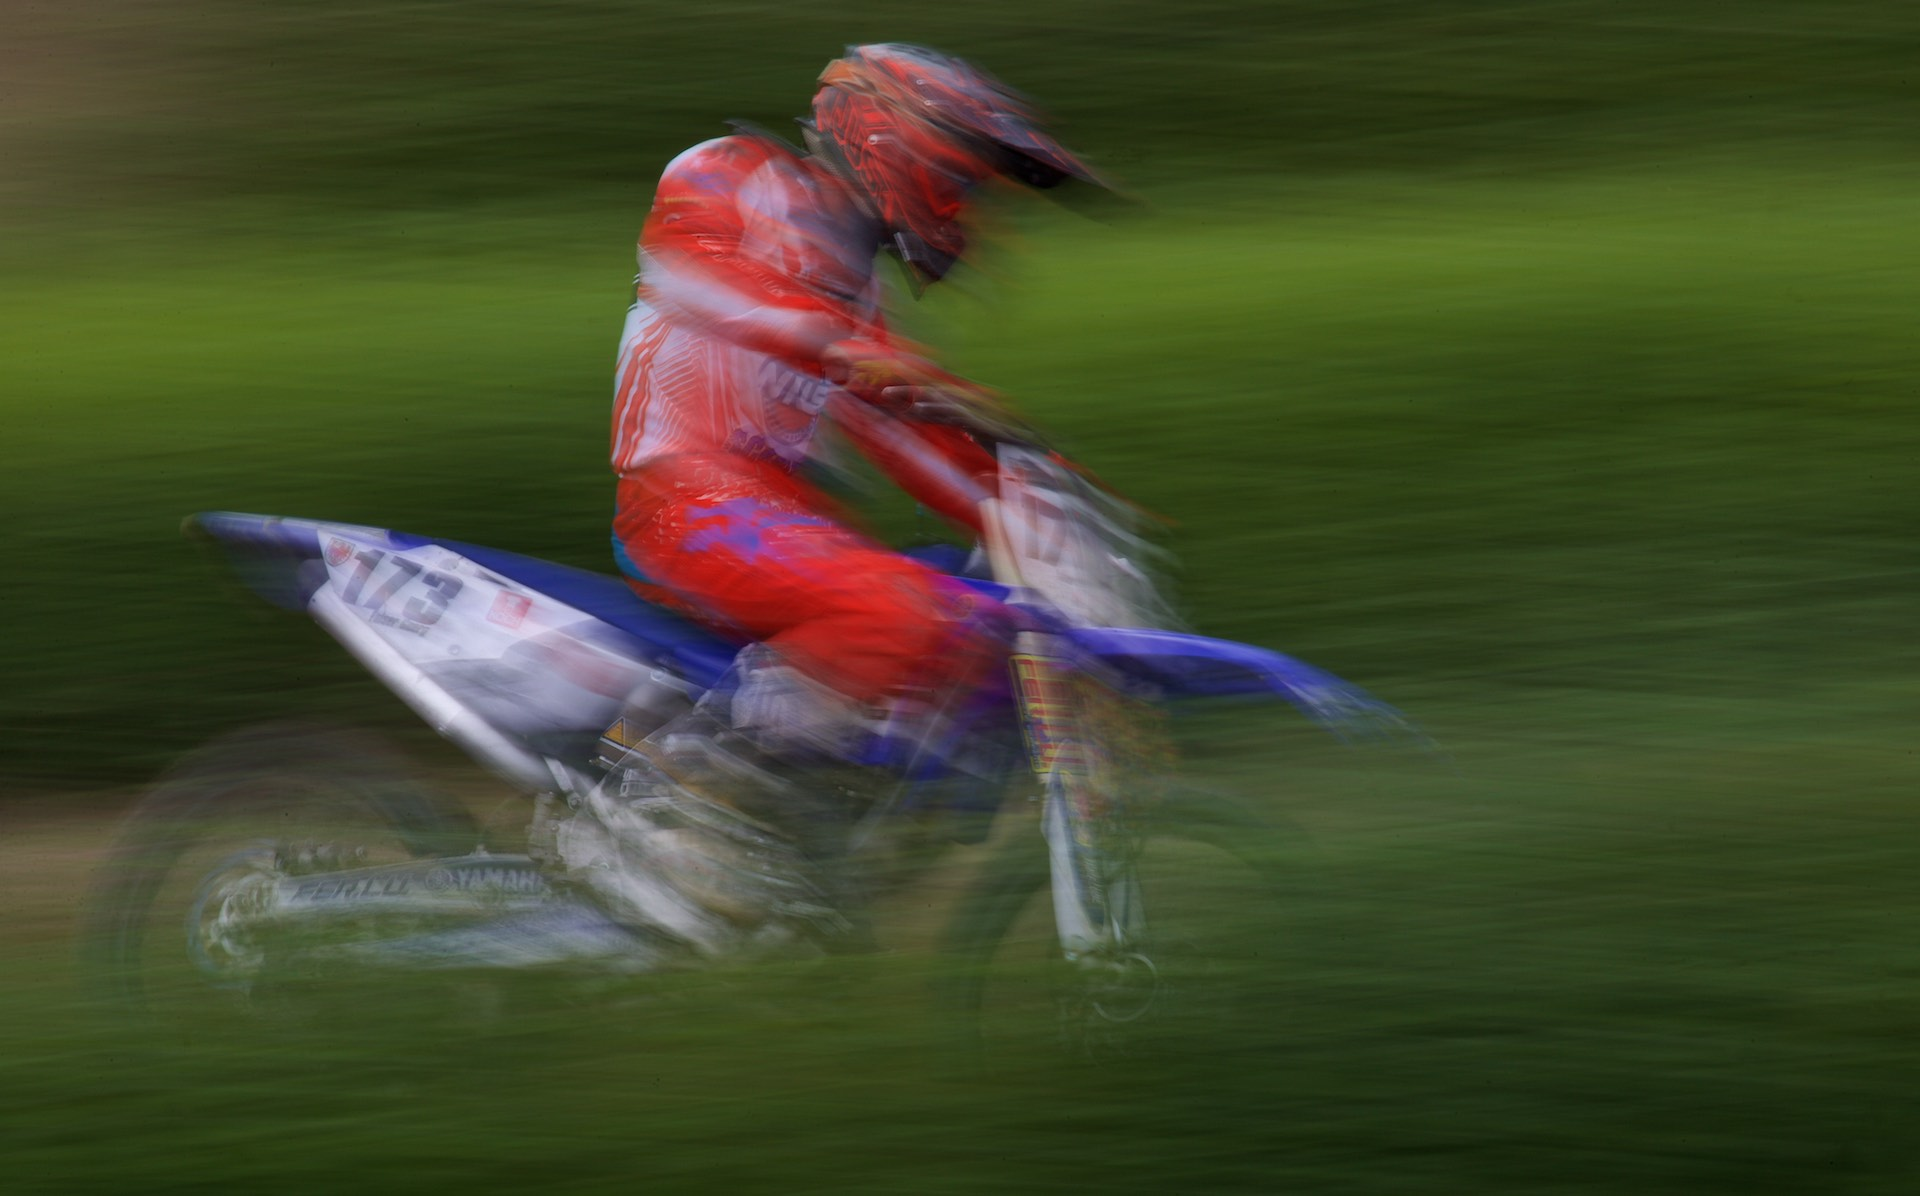 Motocross Speed